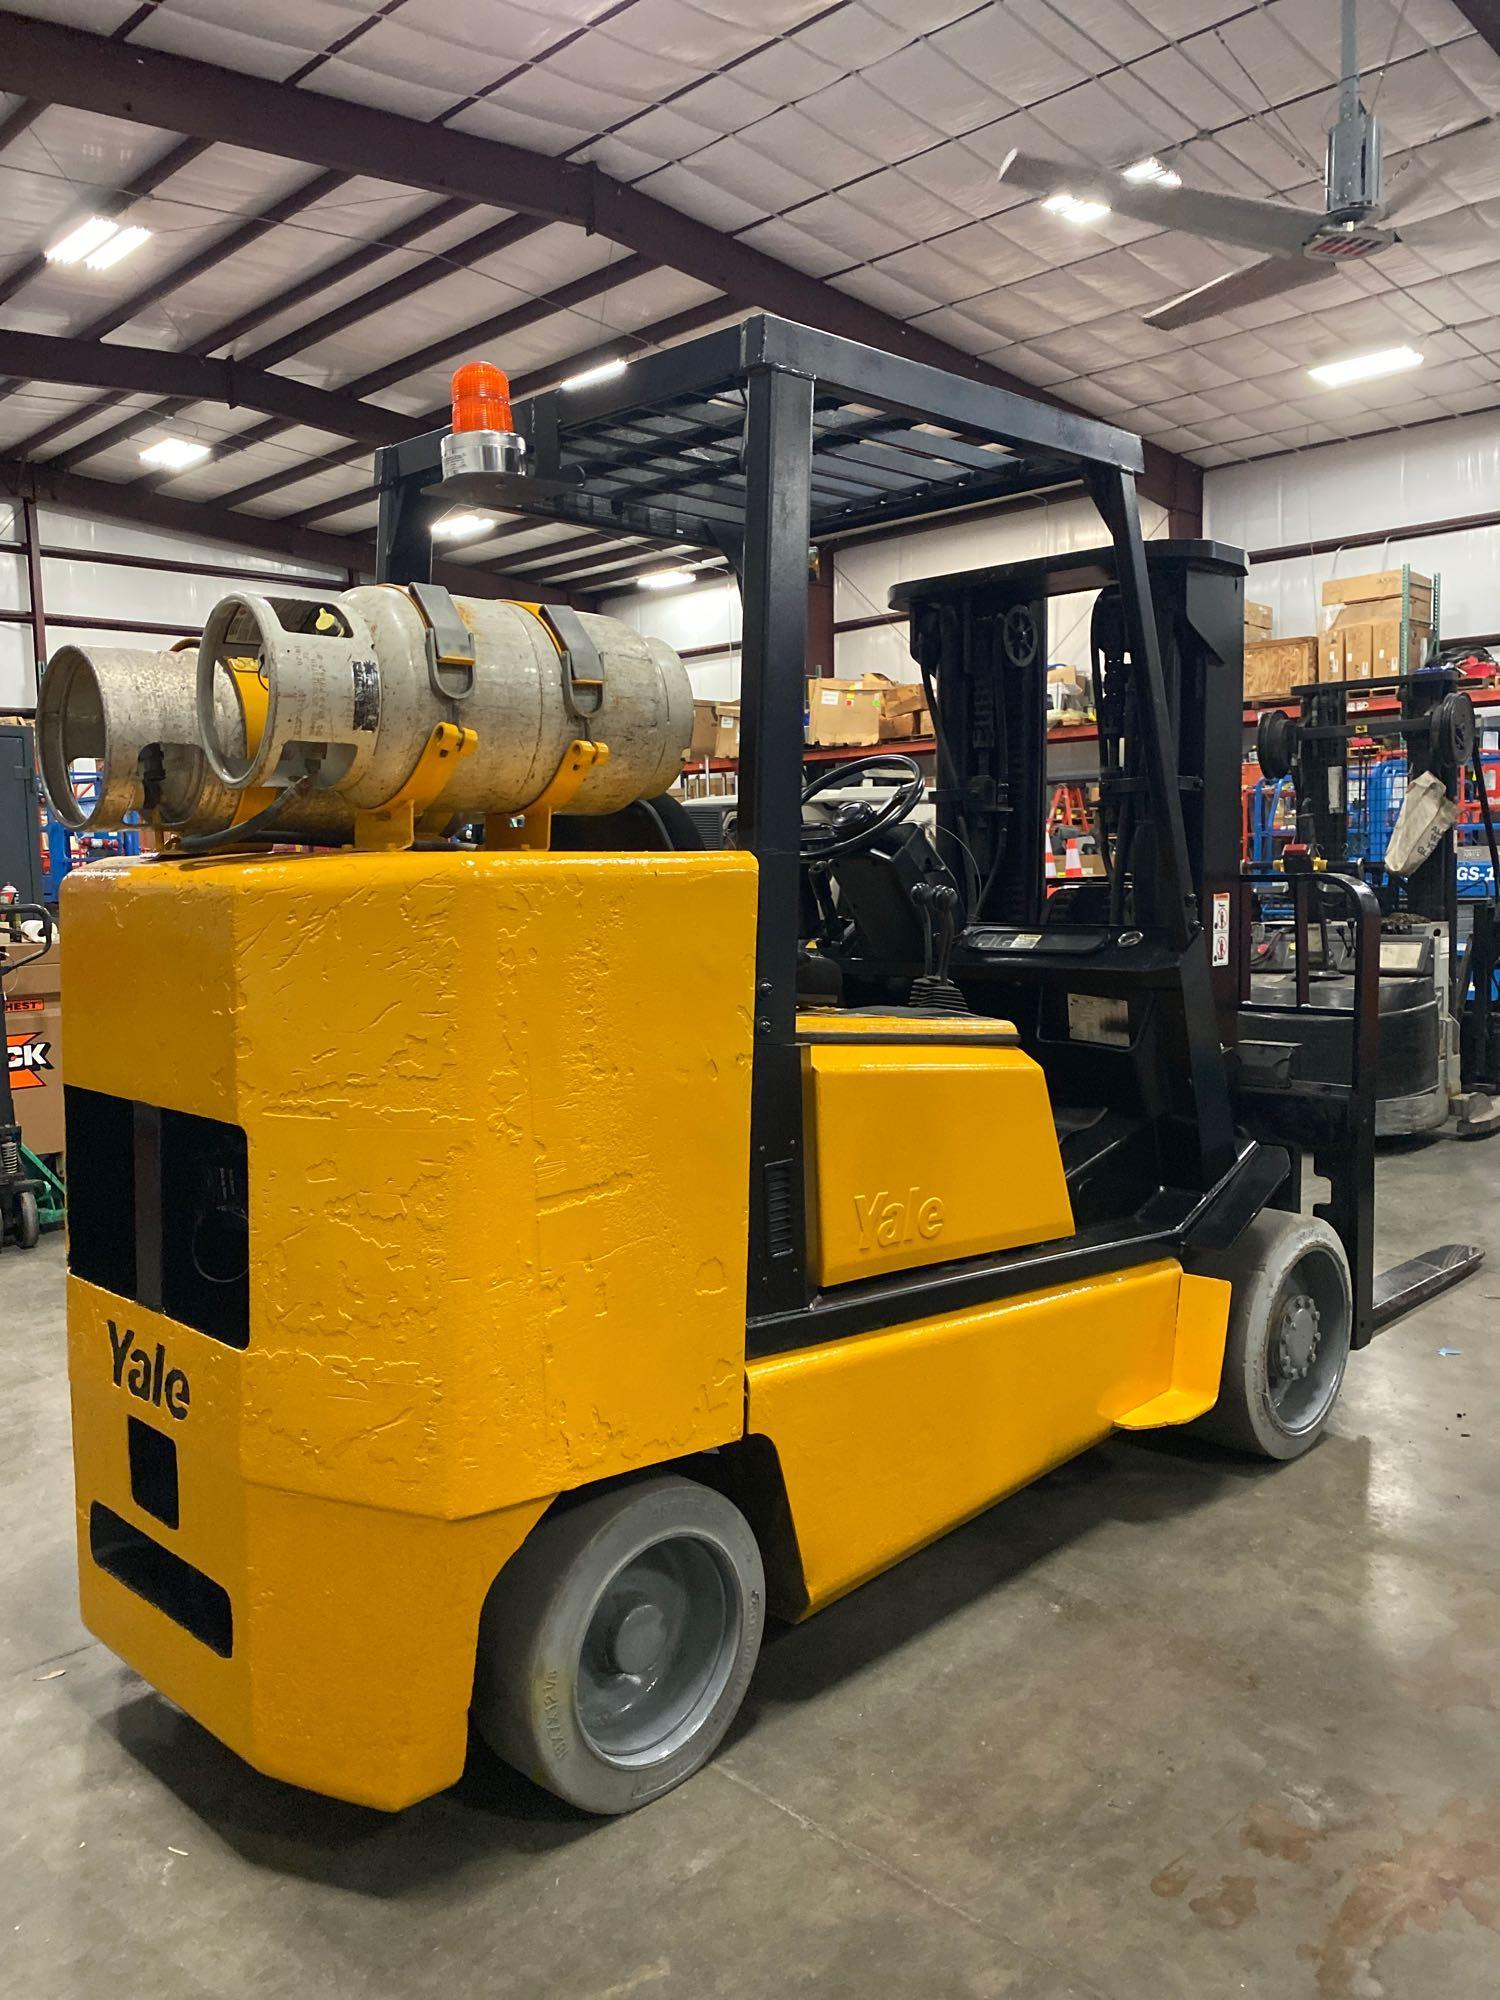 YALE LP FORKLIFT MODEL CLC120, APPROX. 12,000 LB CAPACITY, TILT, SIDE SHIFT, RUNS AND OPERATES - Image 6 of 10